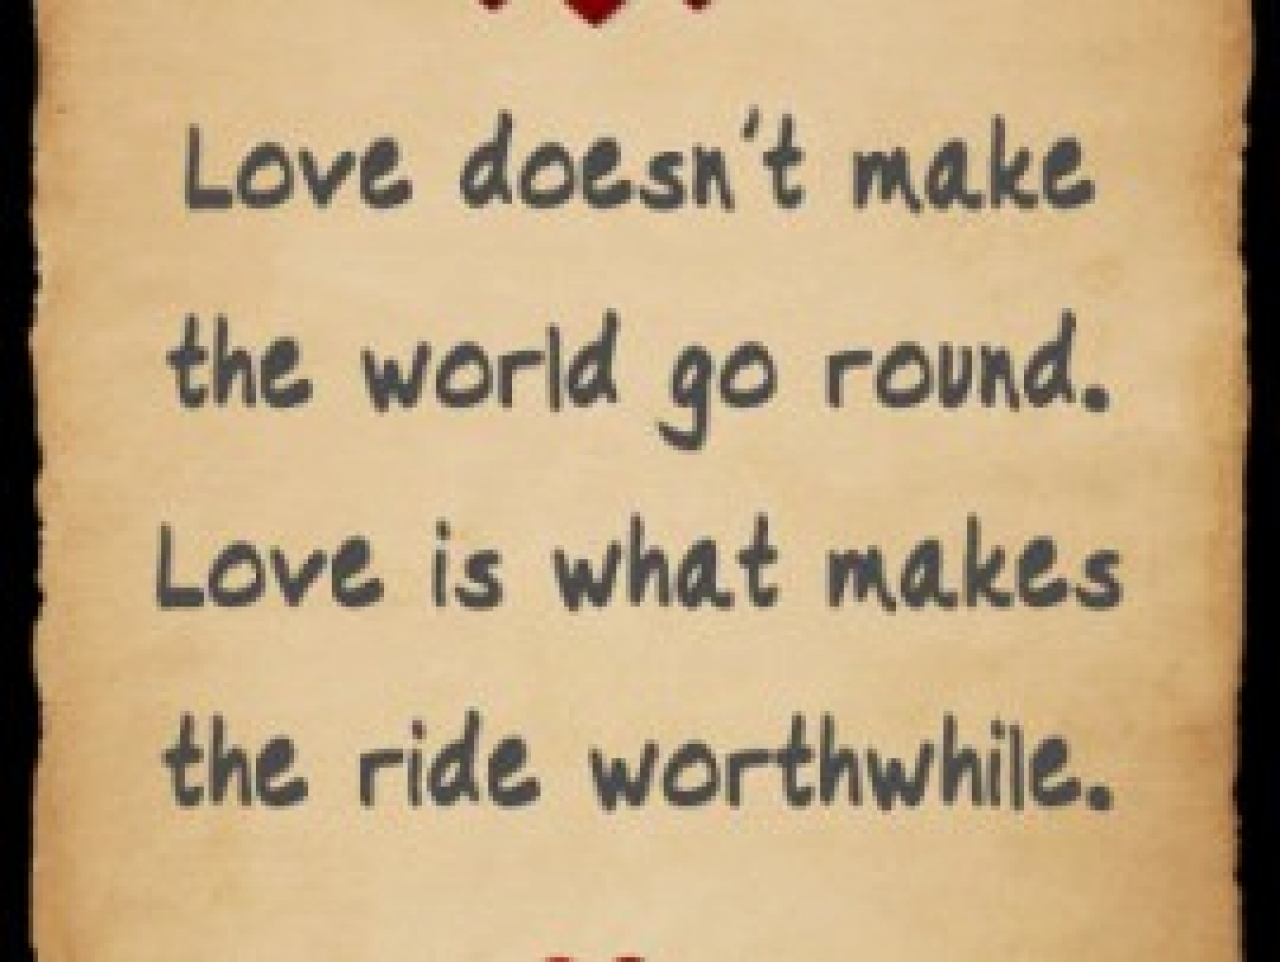 Love Quotes For Fiance Sweet Love Quotes For Fiance Sweet Love Quotes For Girlfriend